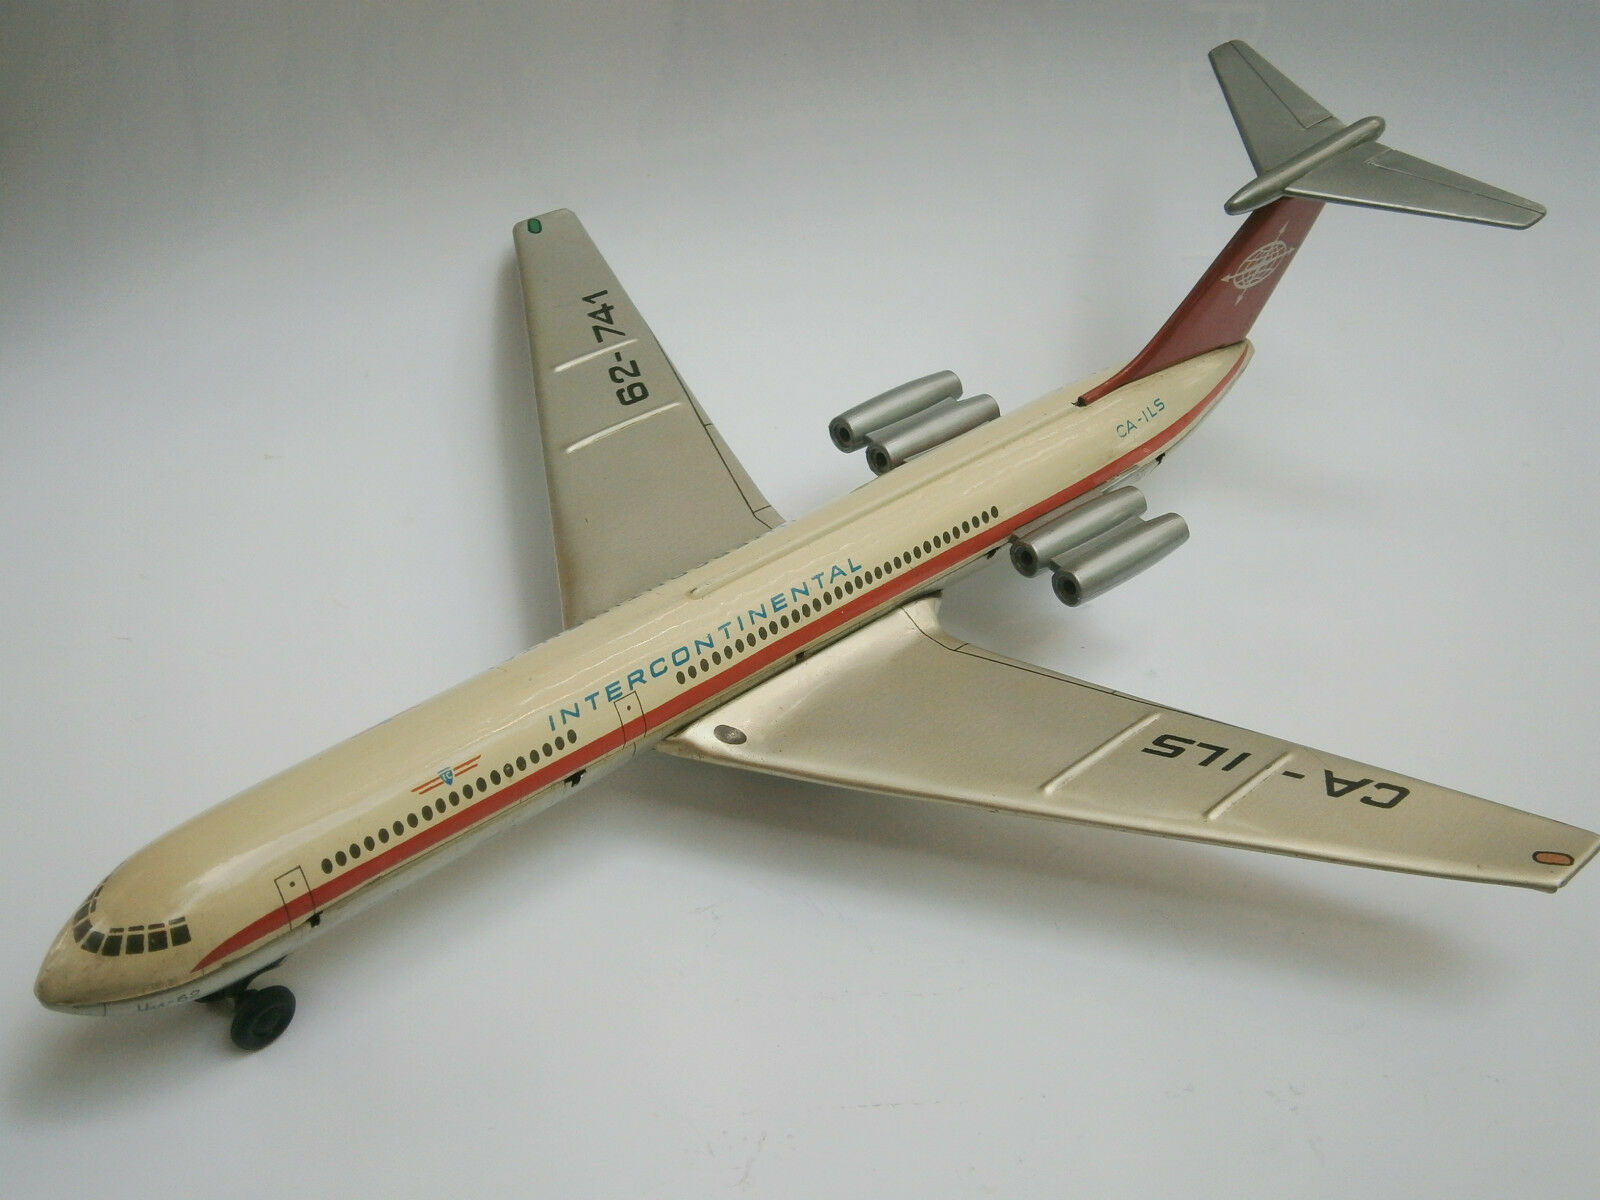 Vintage mécanisme URSS TIN FRICTION toy avion IL-62 Avion Intercontinental